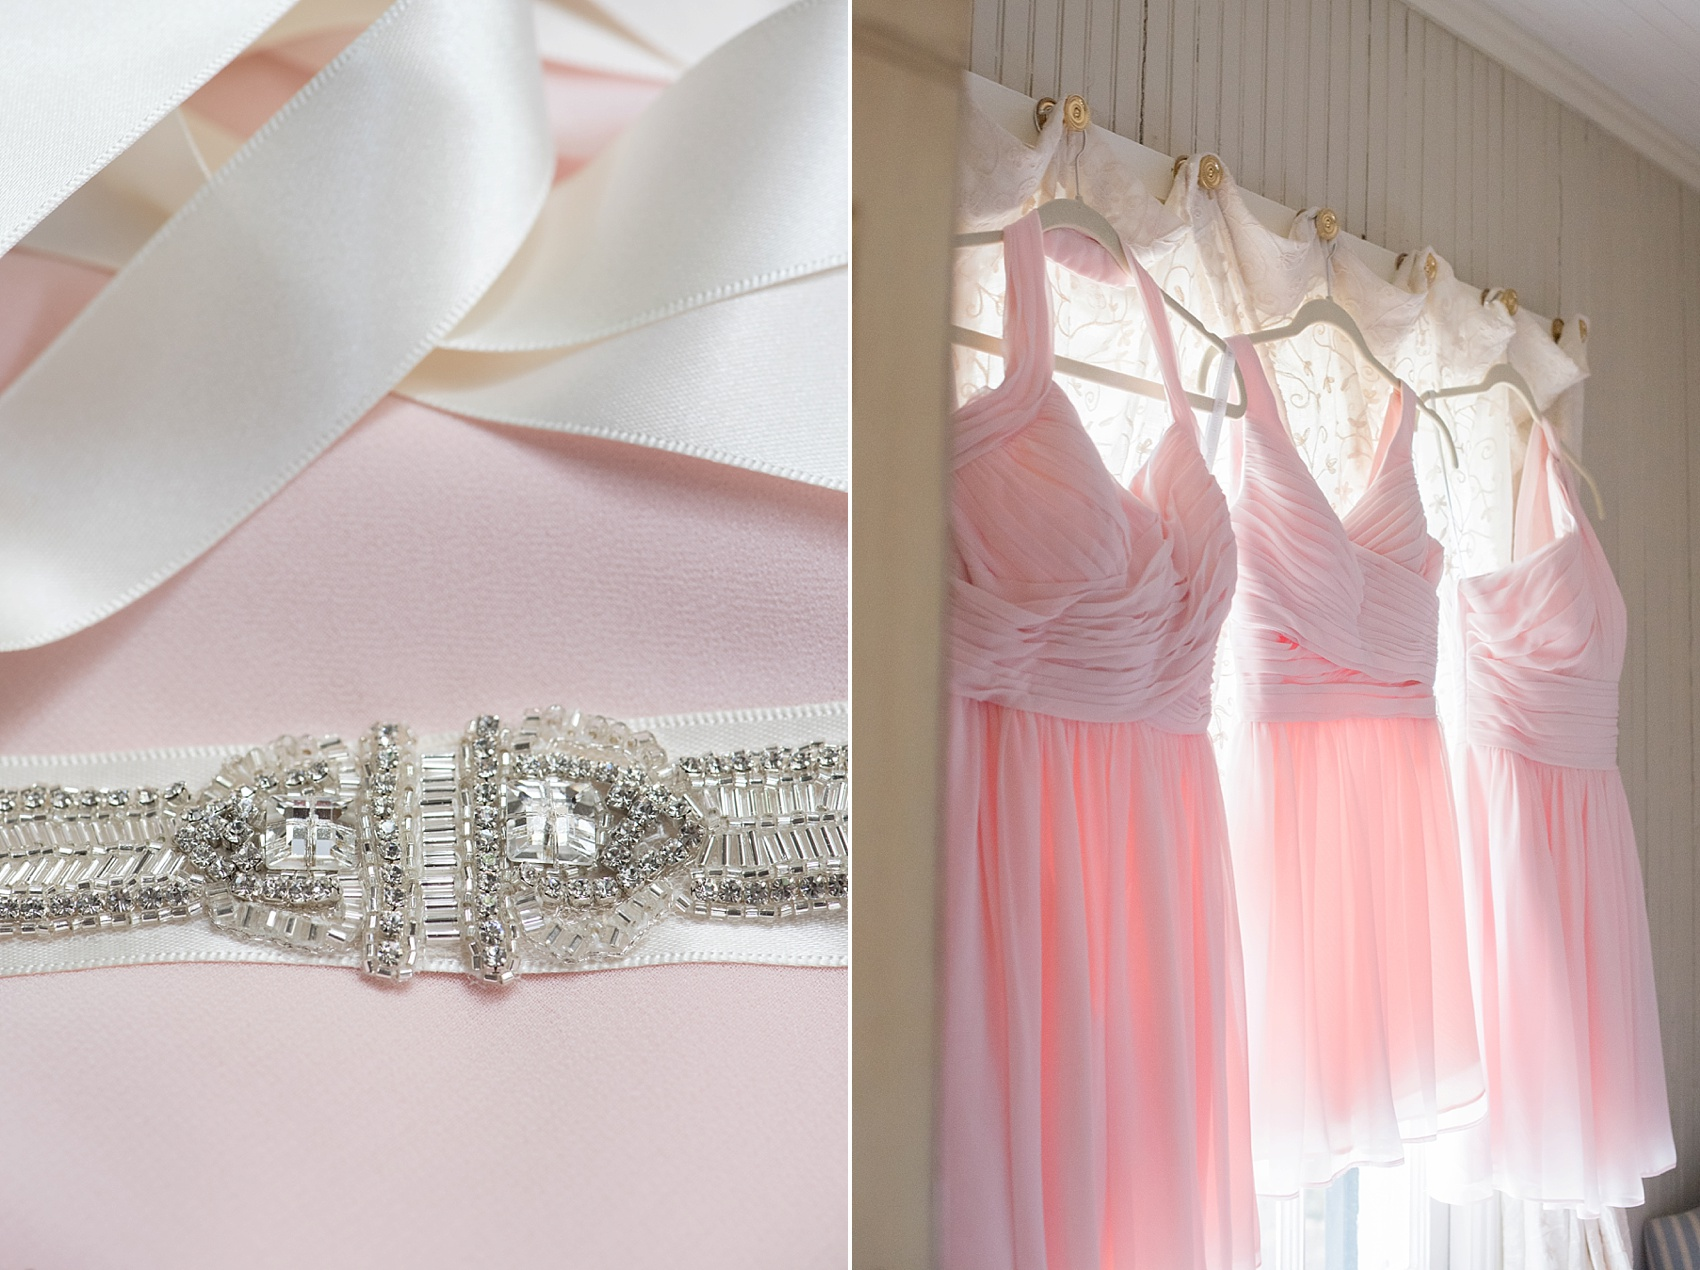 Southern wedding light pink short bridesmaids dresses. Photo by Mikkel Paige for a Hilton Head, Haig Point wedding.